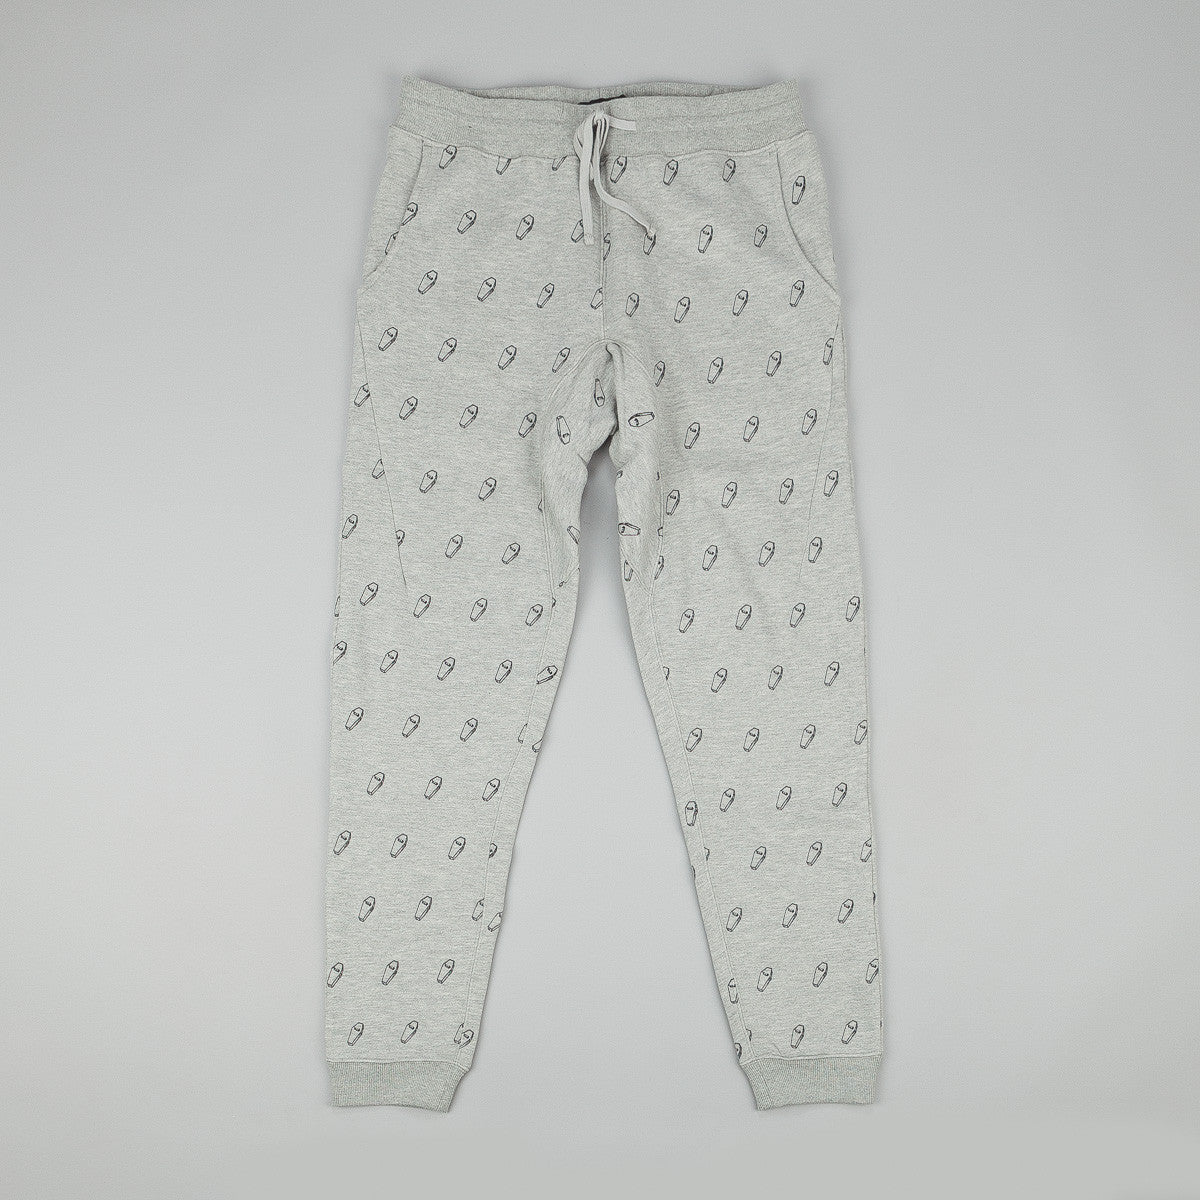 The Quiet Life VIP Embroidered Jogger Pant - Heather Grey